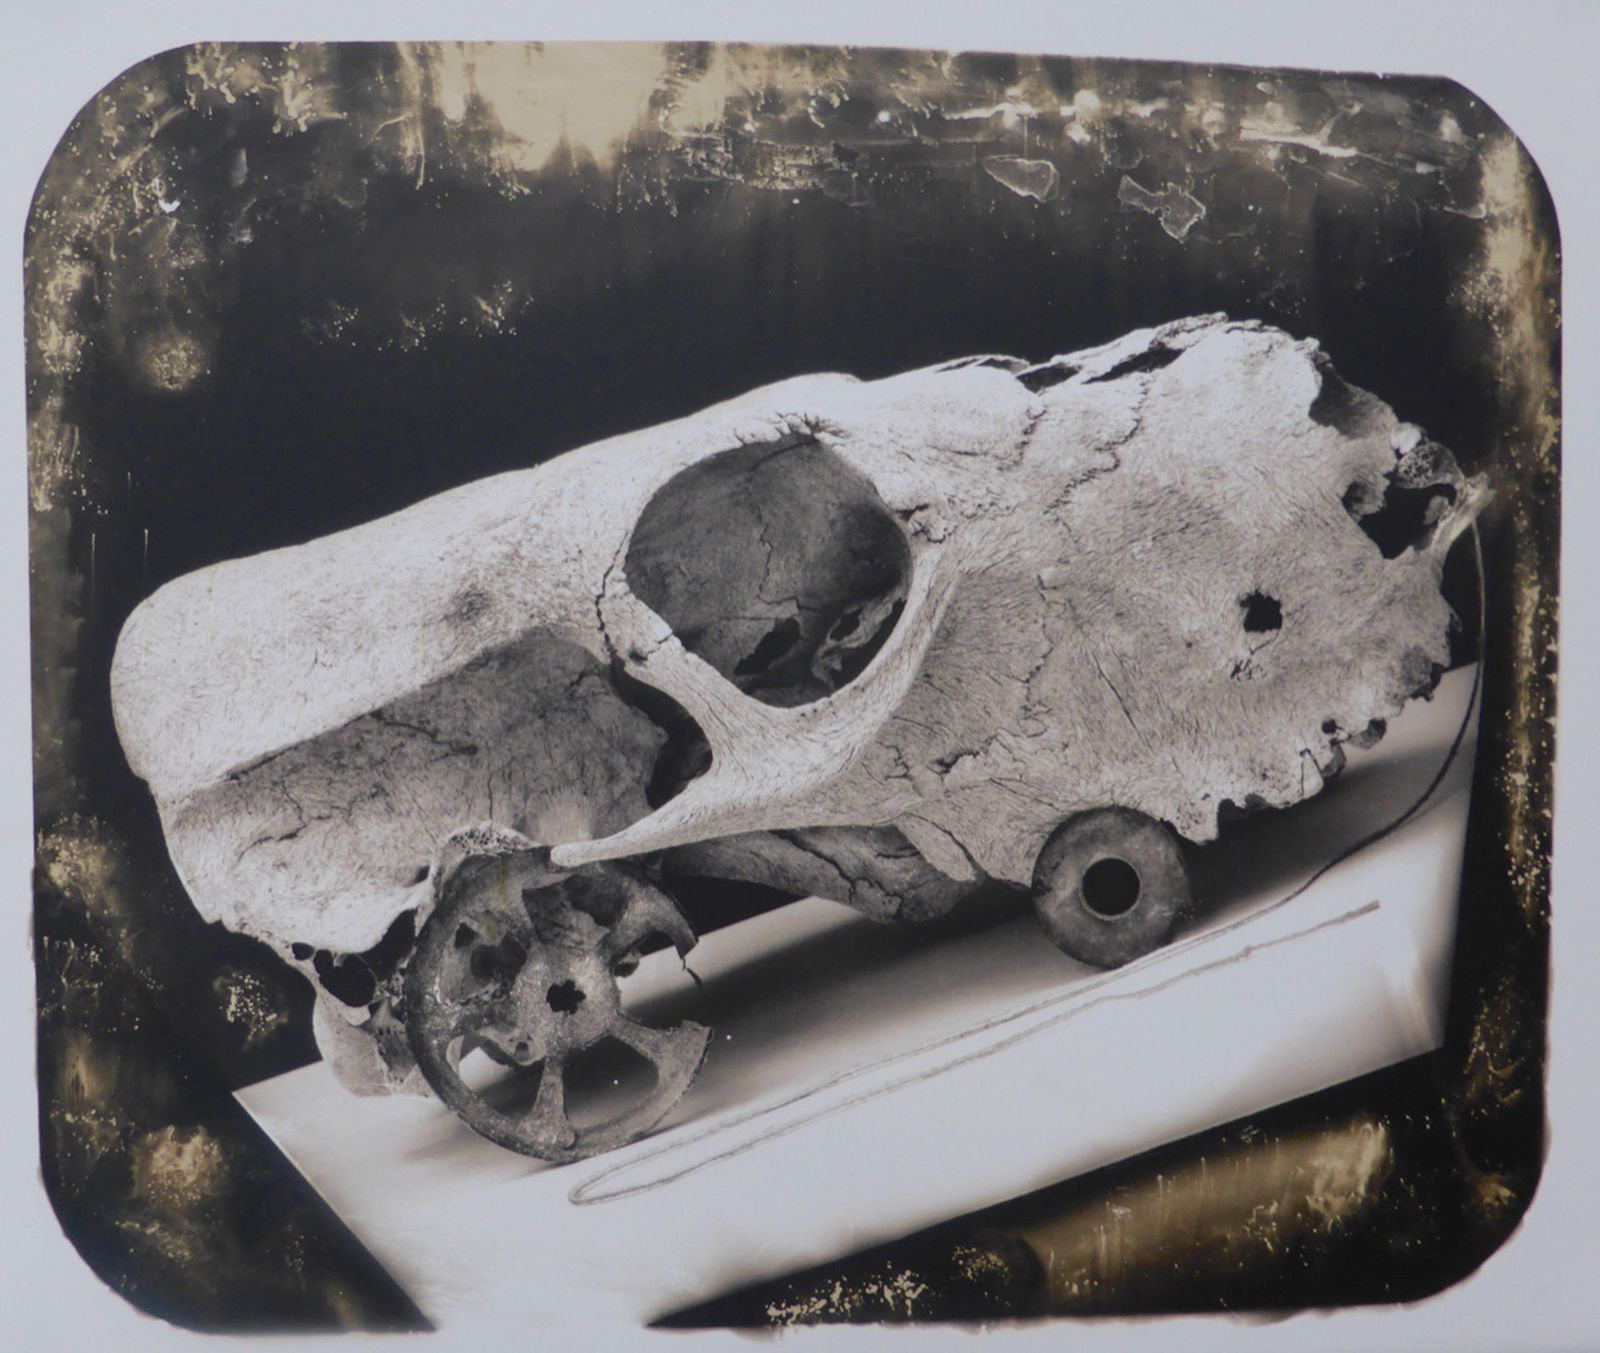 """A Child's pull-toy Discovered in 1854 at Pompeii"", 2016 de Joel-Peter Witkin - Courtesy Galerie Baudoin Lebon"